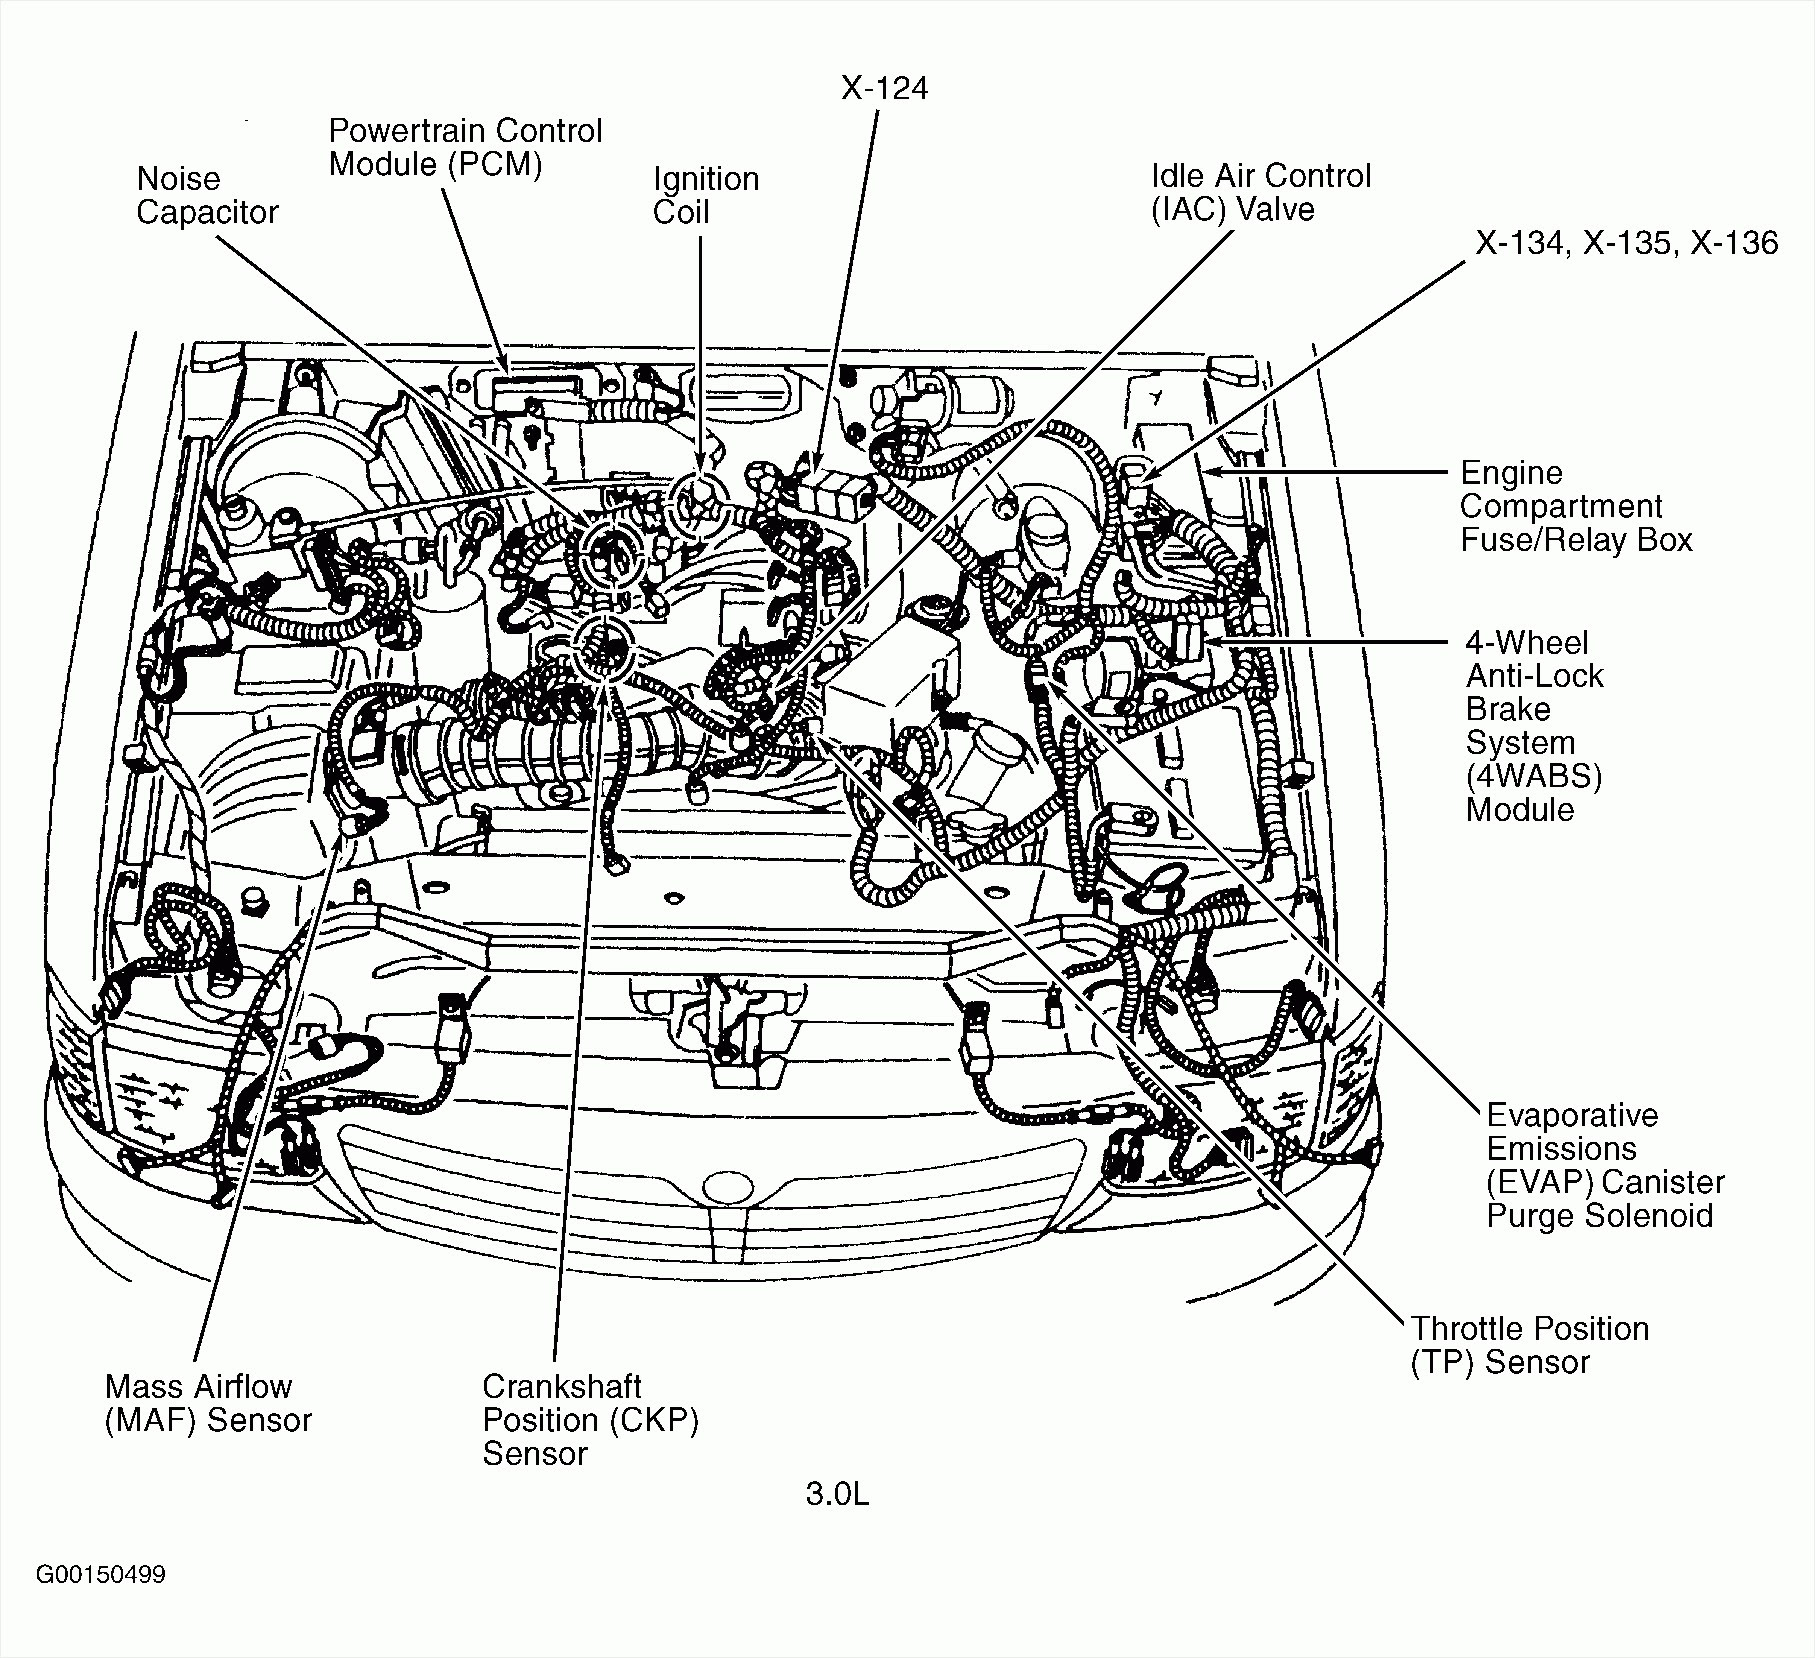 2008 Jeep Liberty Engine Diagram Wiring Diagrams Post Studio A Studio A Michelegori It